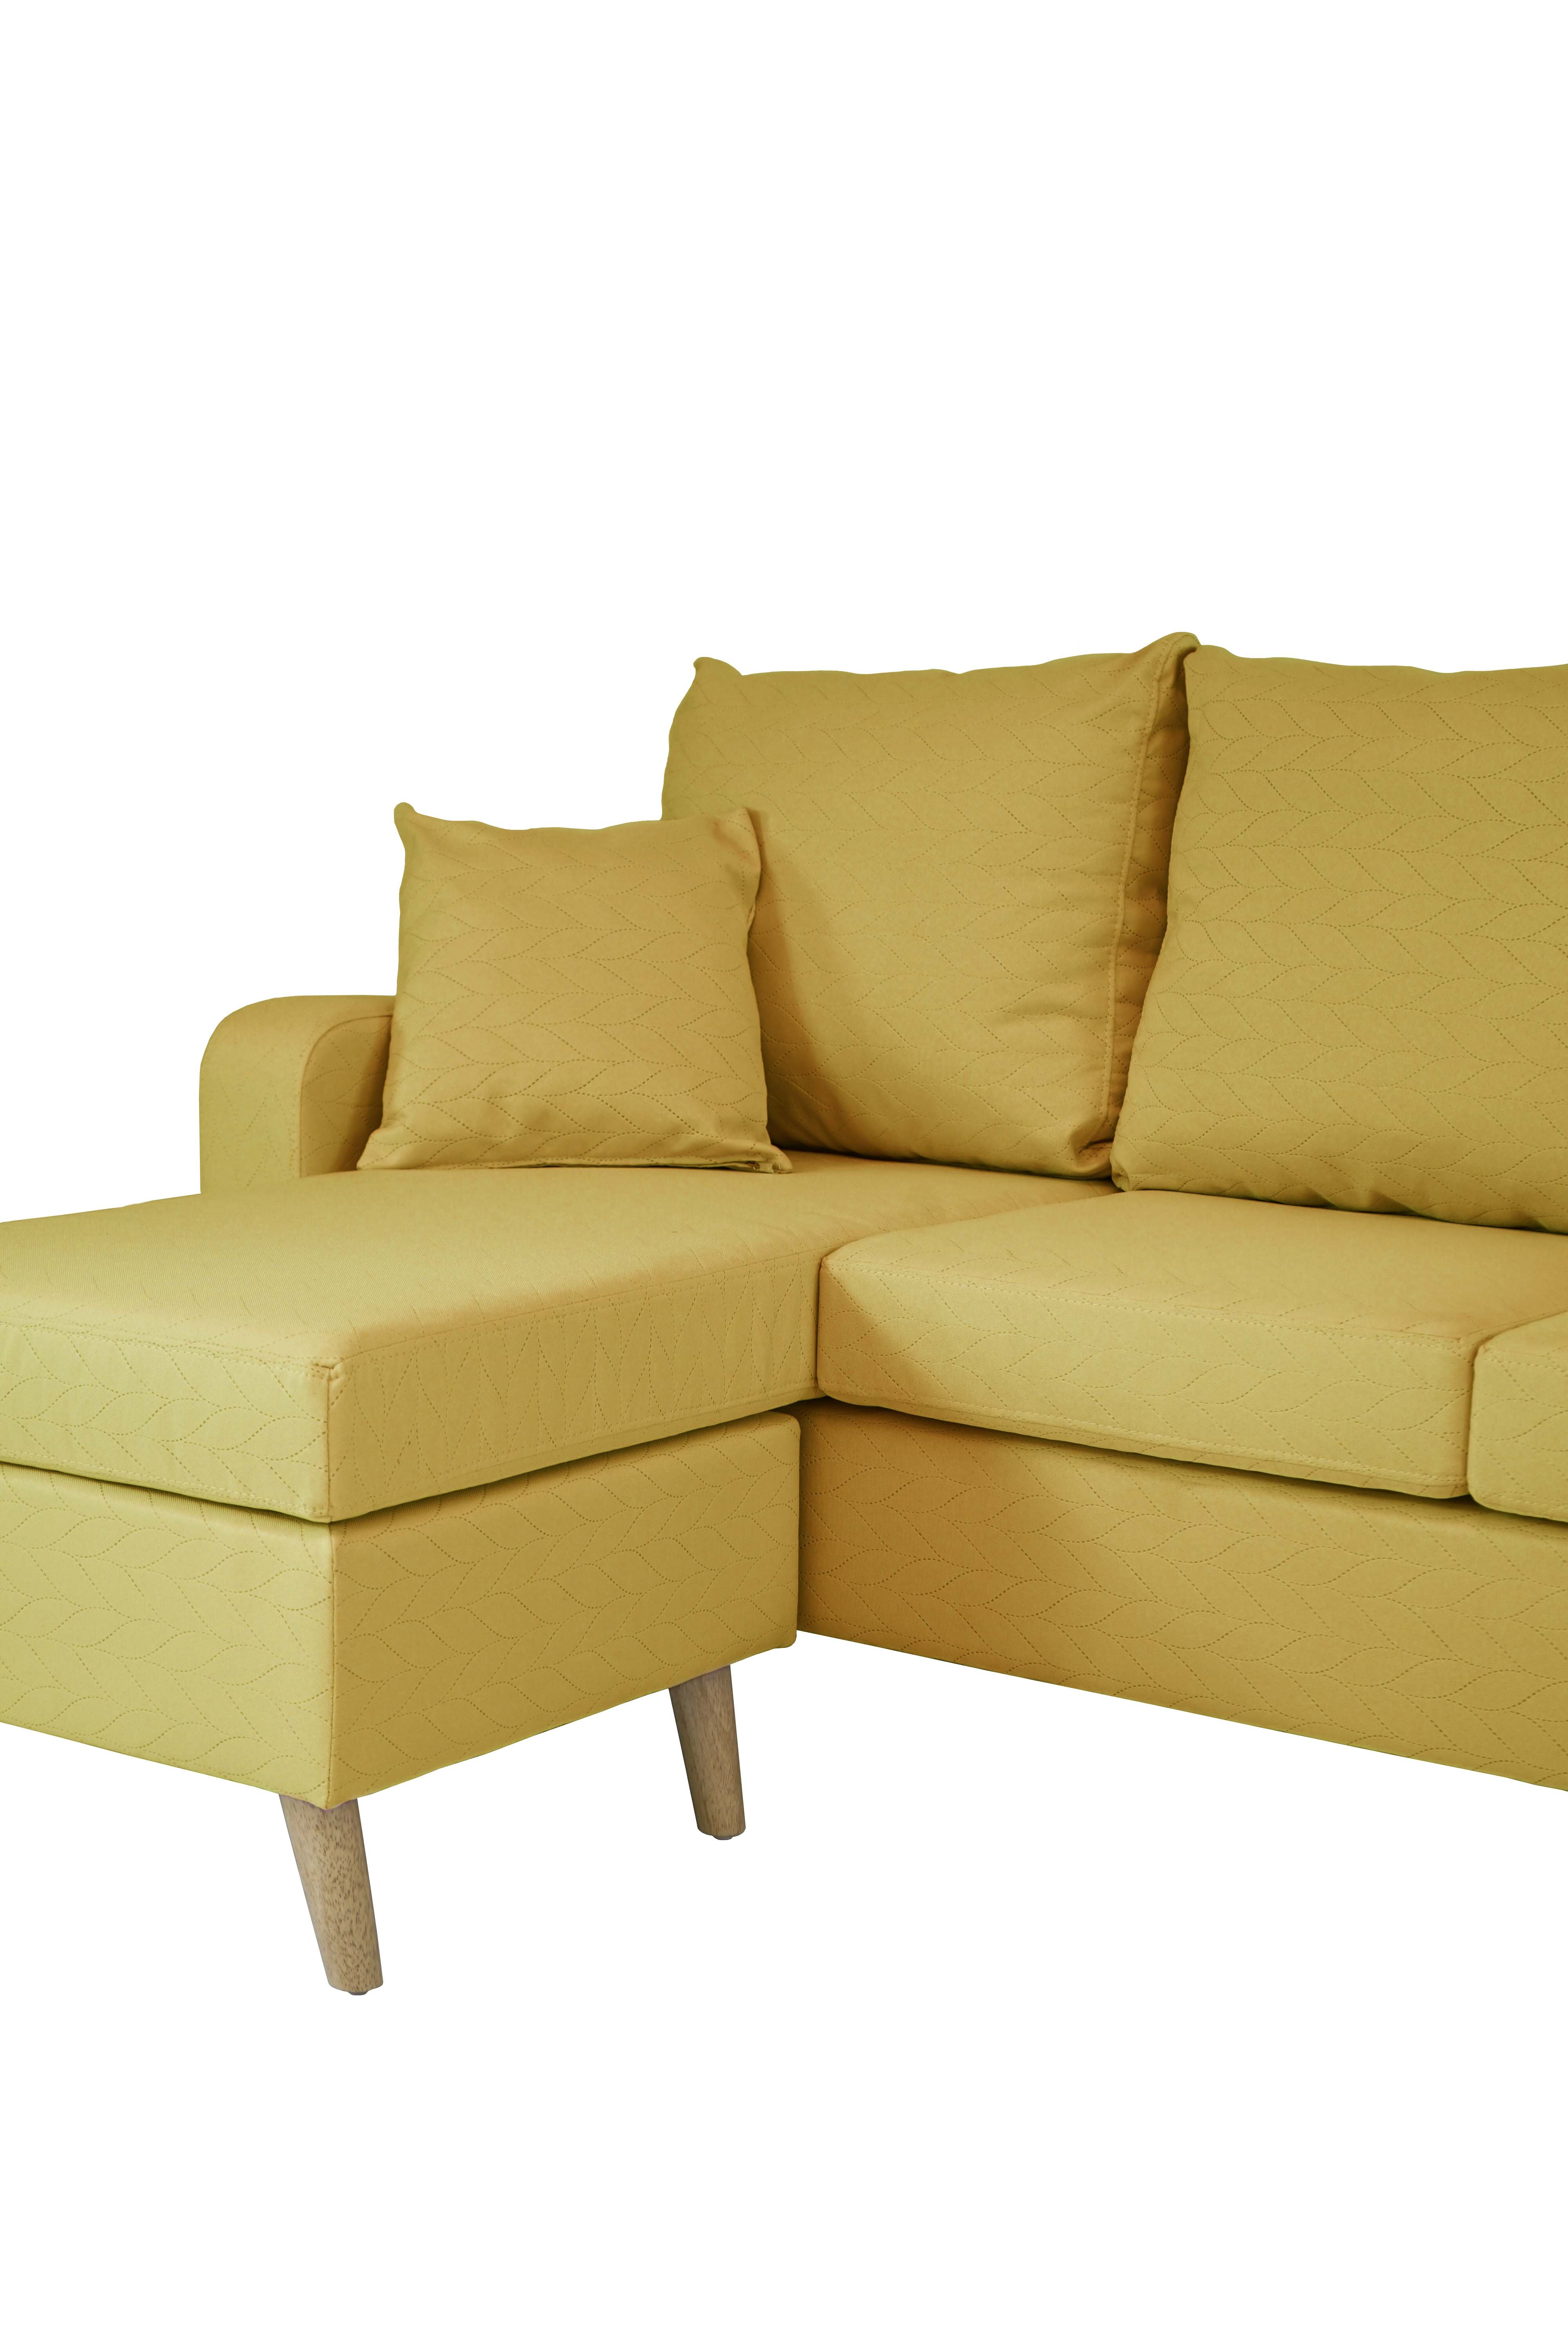 Details about Modern Linen Small Space LShape Couch Reversible Sofa  Configurable Chaise Yellow